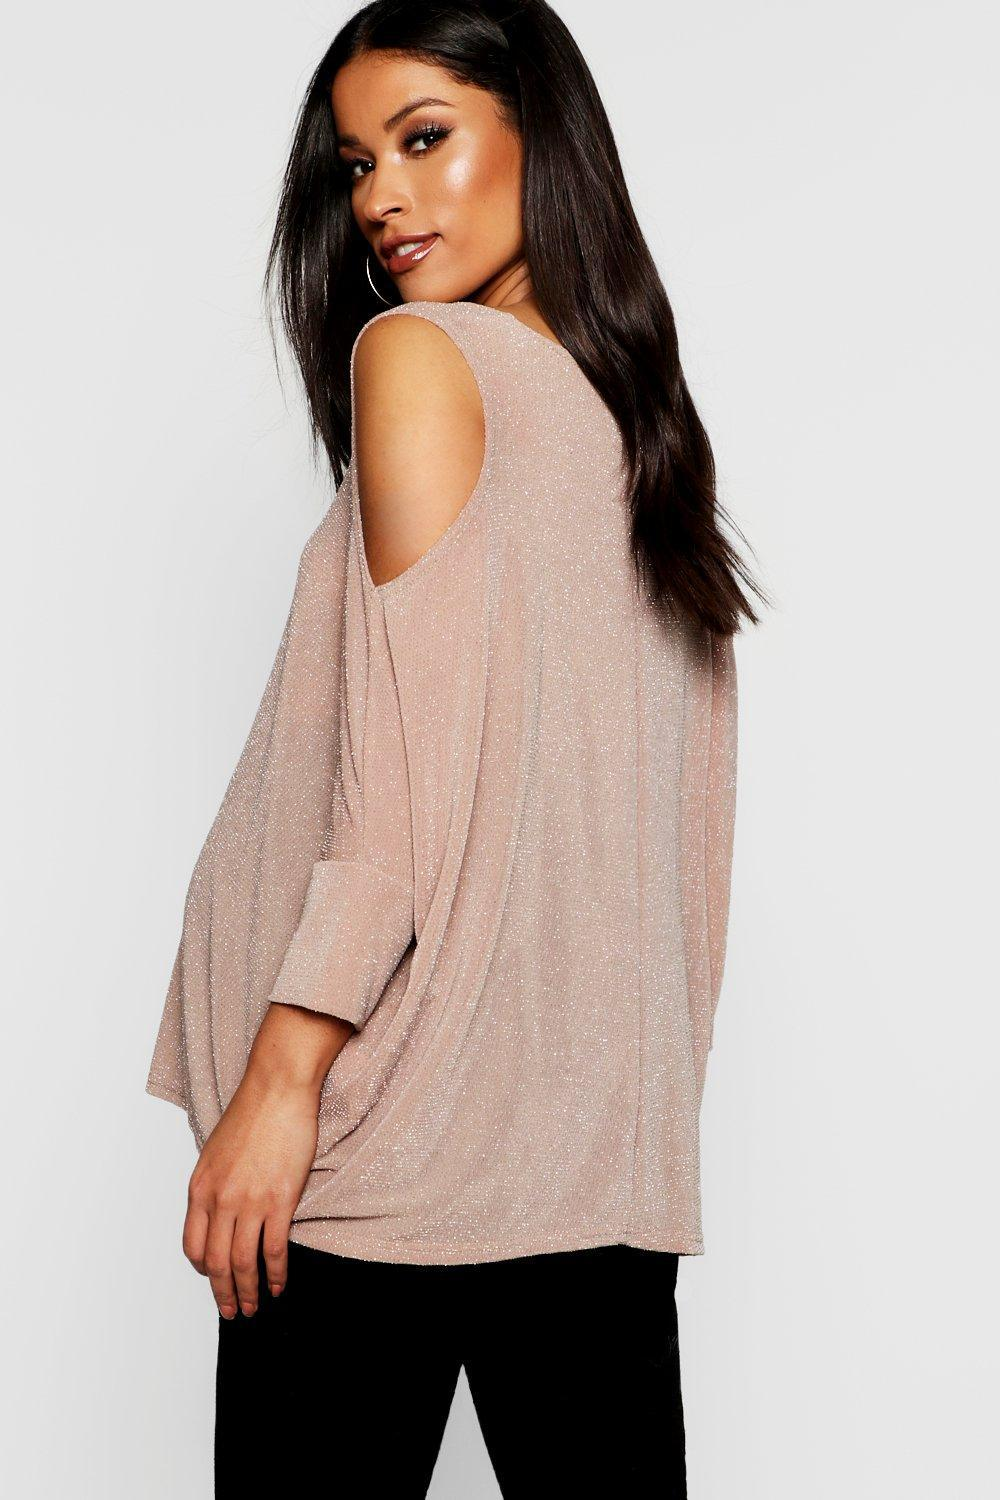 364fbc781be649 ... Shimmer Cold Shoulder Swing Top - Lyst. View fullscreen